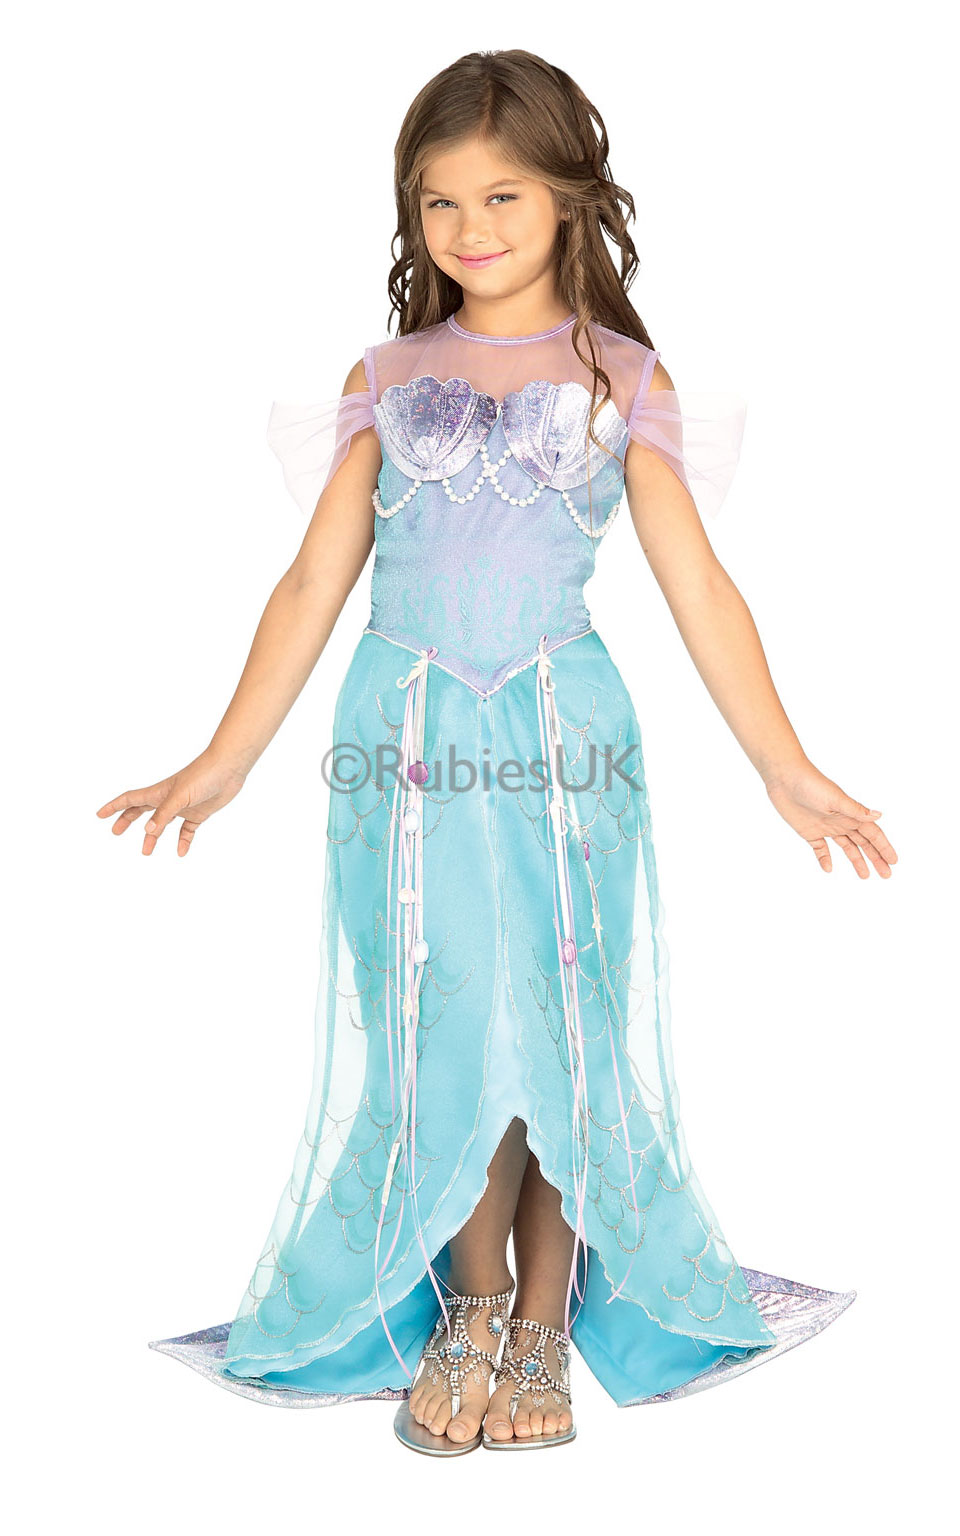 girl mermaid costume